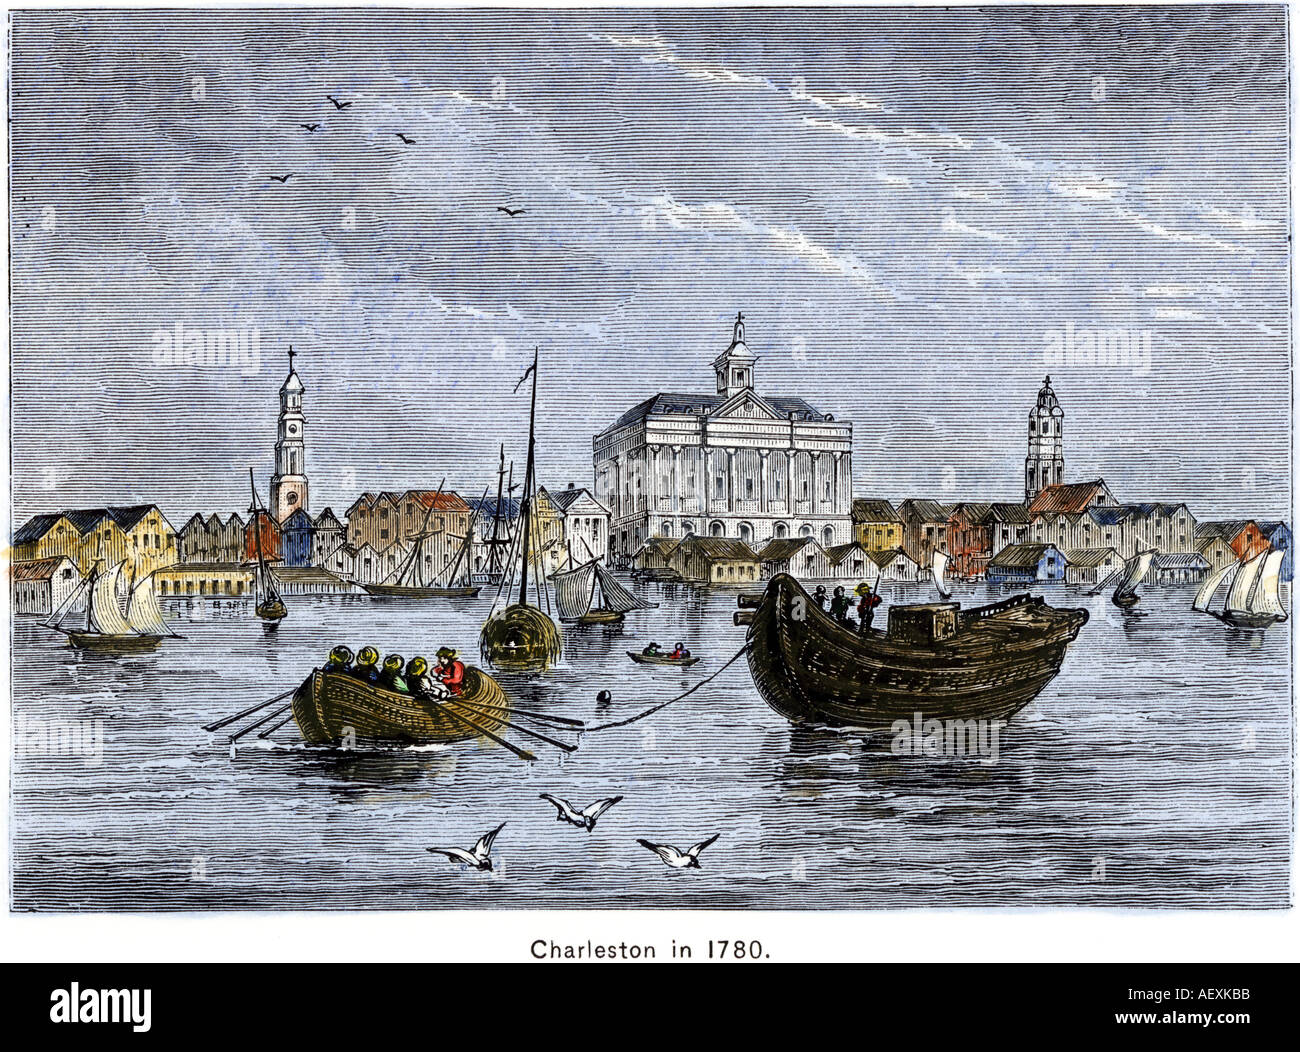 Harbor of Charleston South Carolina Colony in 1780 during the American Revolution - Stock Image